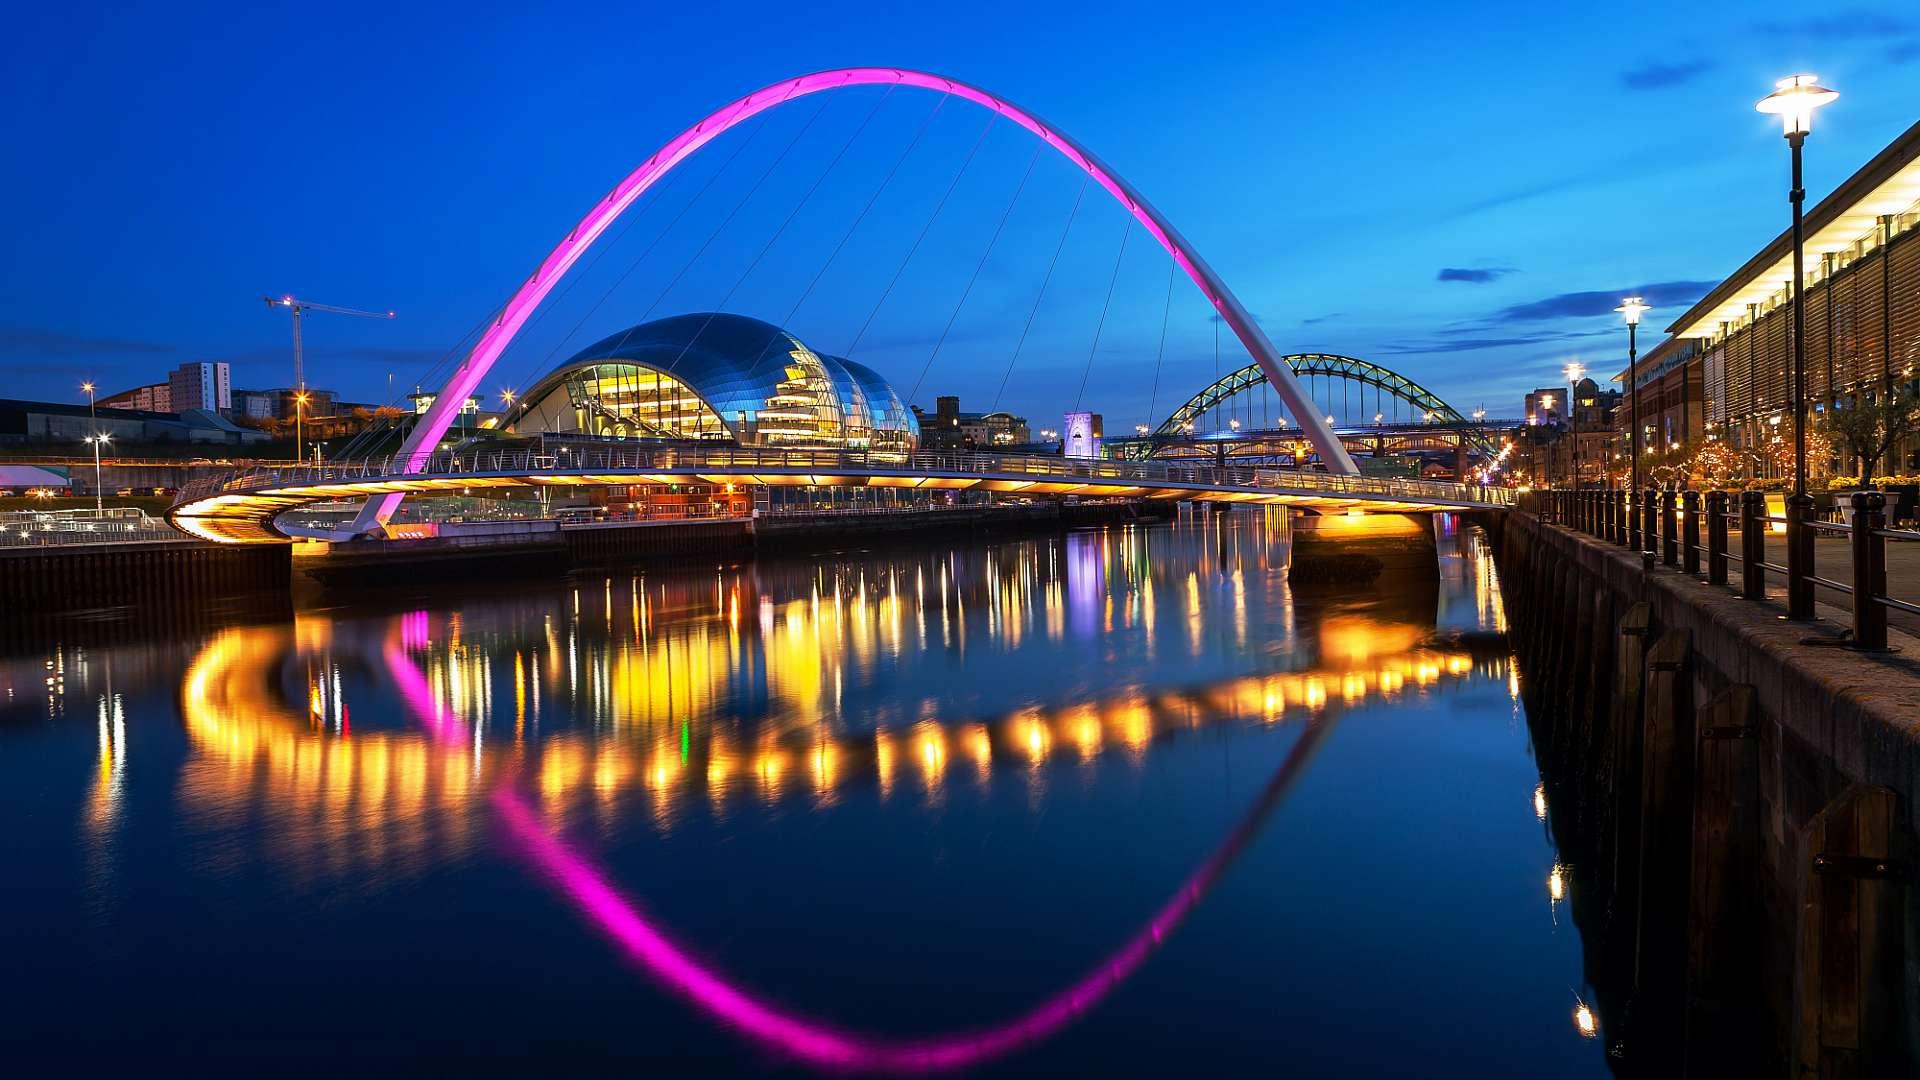 The EPRISE European Photonics Roadshow, which will take place in Gateshead and Newcastle, will provide SMEs with in-depth industry insight to better understand market needs and overcome challenges to progress ideas and innovation